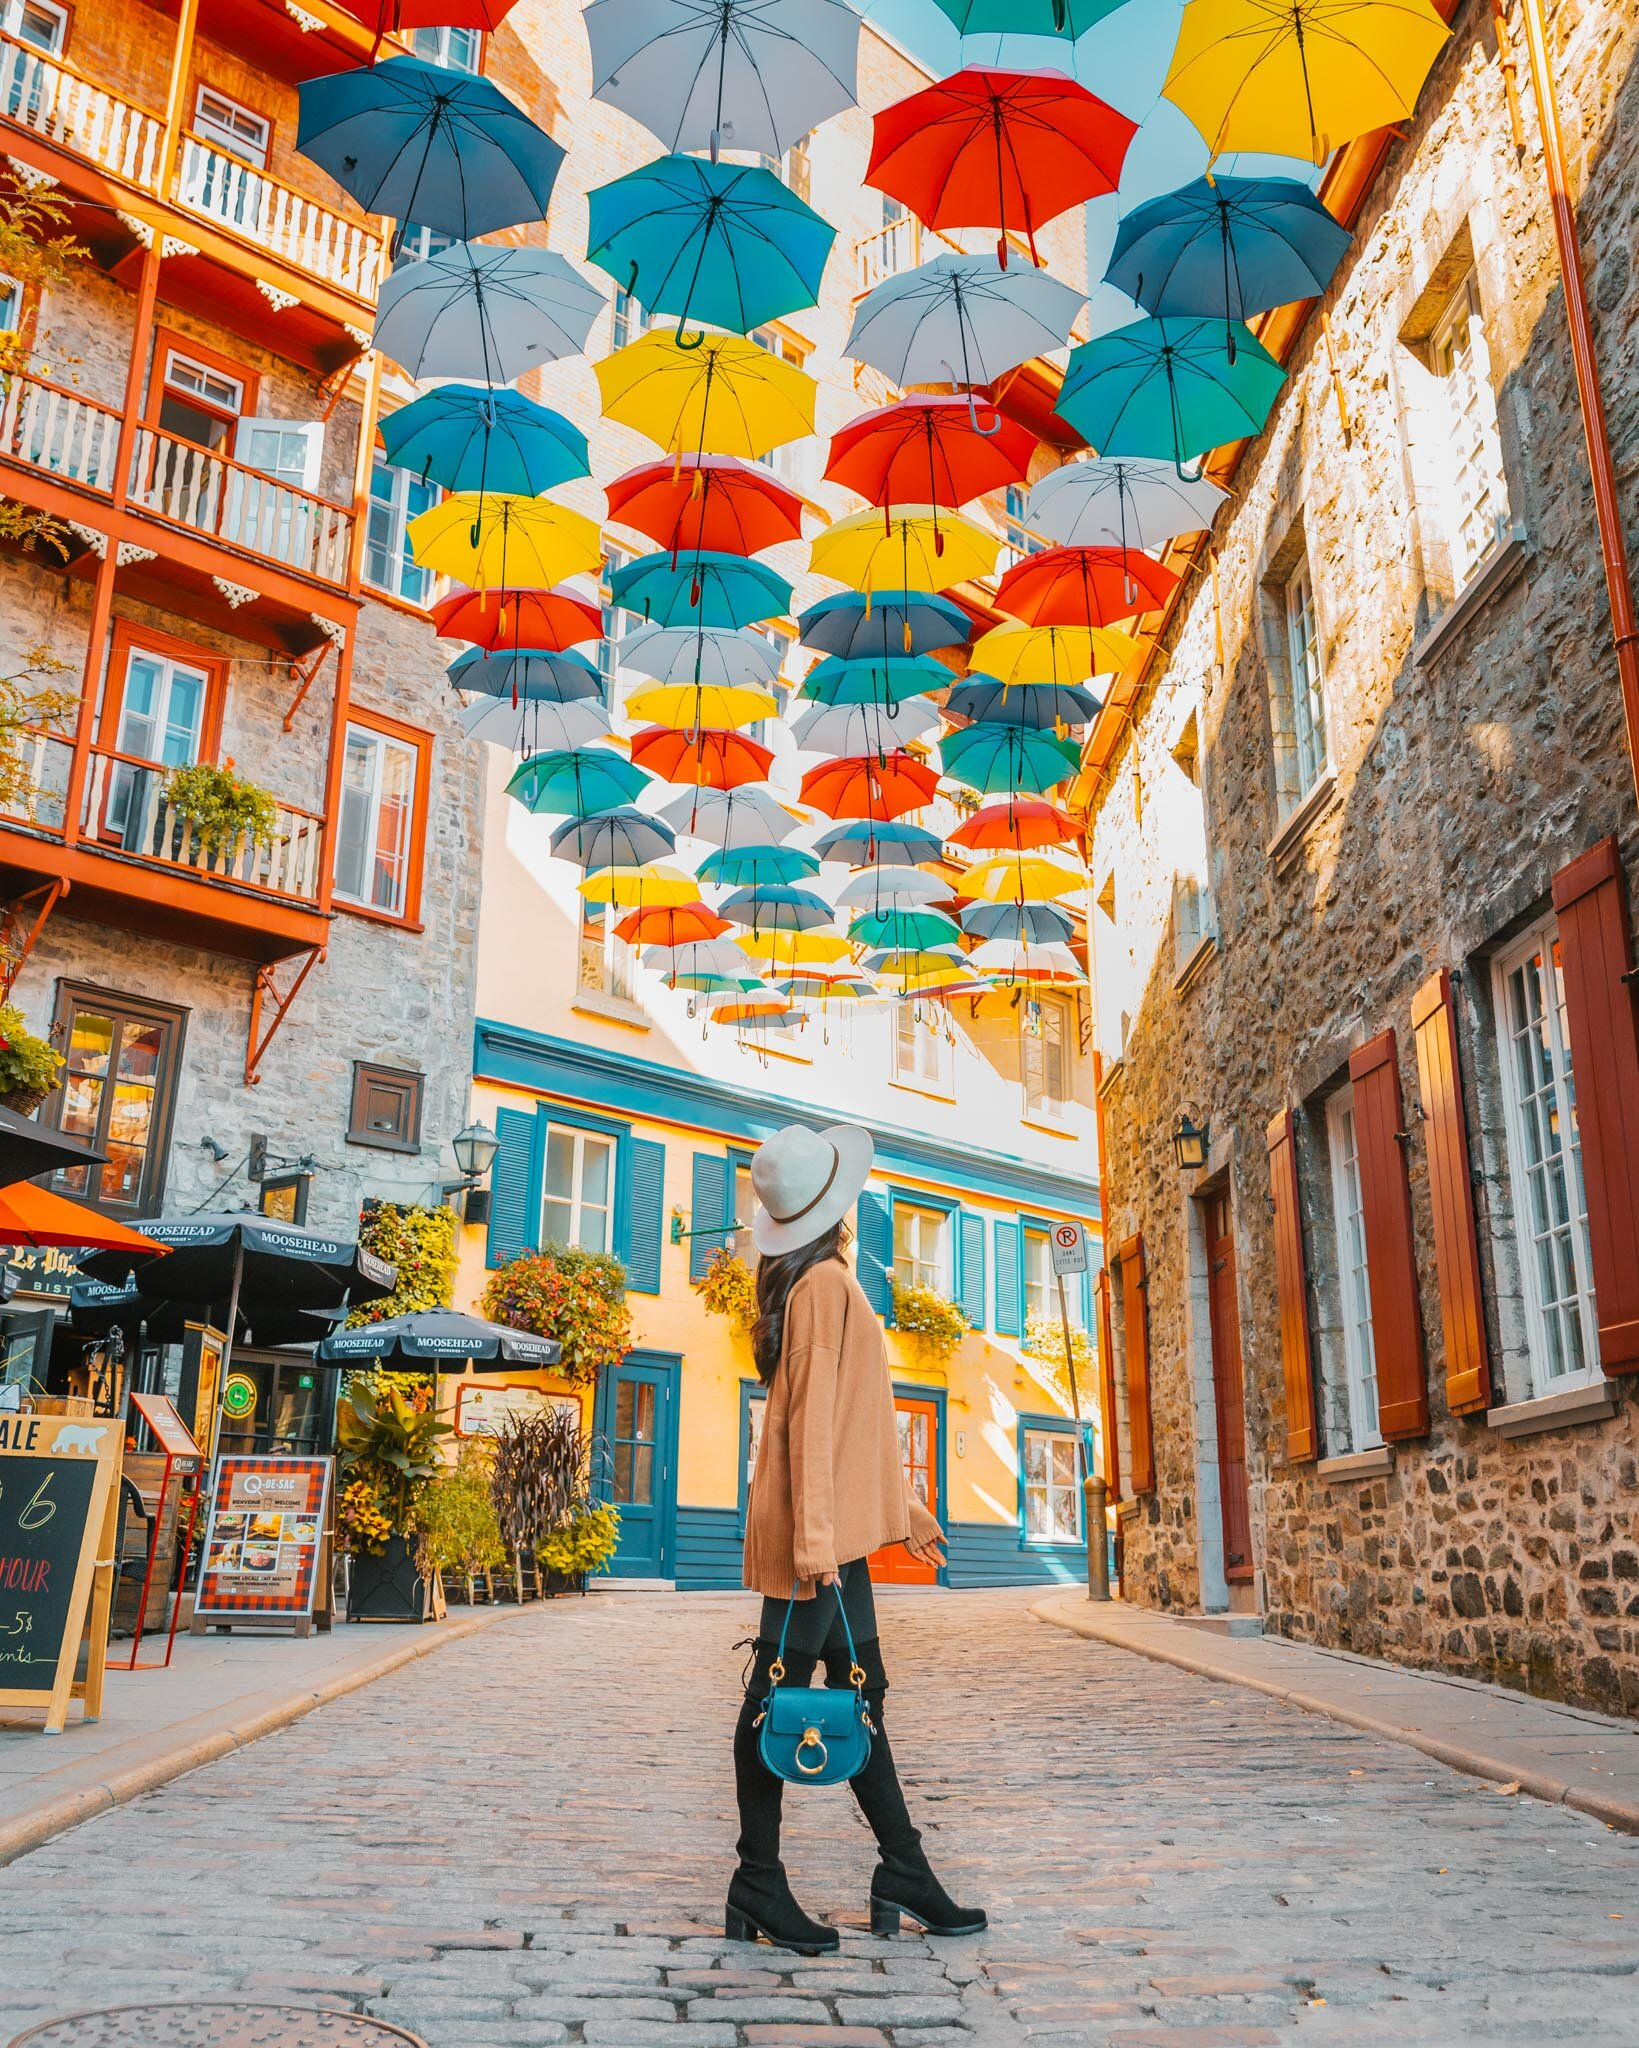 Quebec City umbrella street in Old Town // Cruise Review: 11-Day New England & Canada on the Seabourn Quest // #readysetjetset #cruise #luxury #travel #cruising #canada